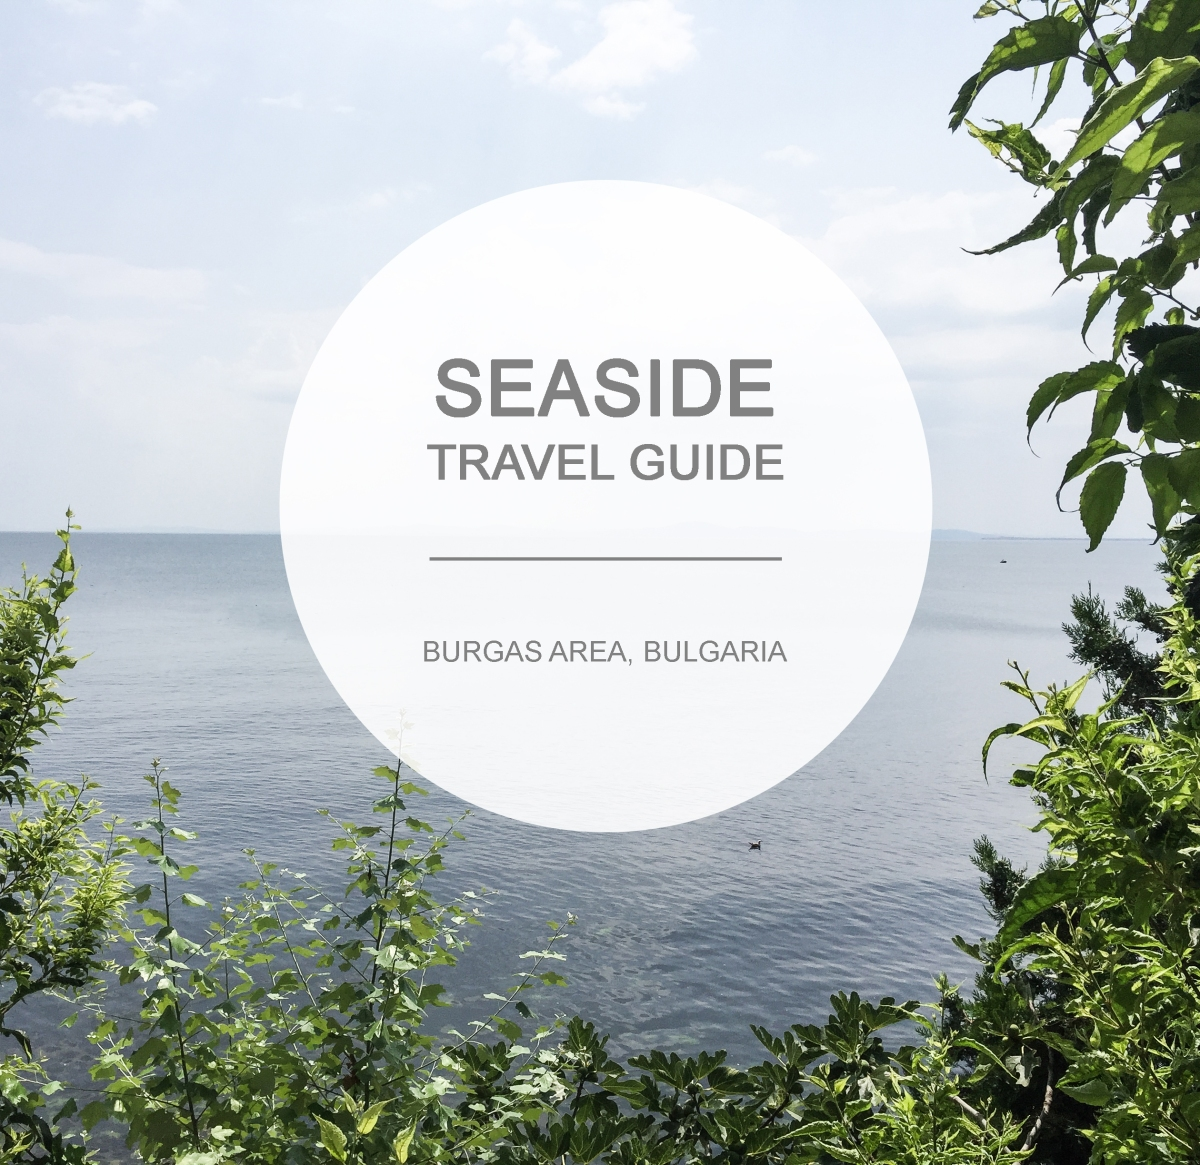 Seaside Travel Guide to the Burgas region, Bulgaria